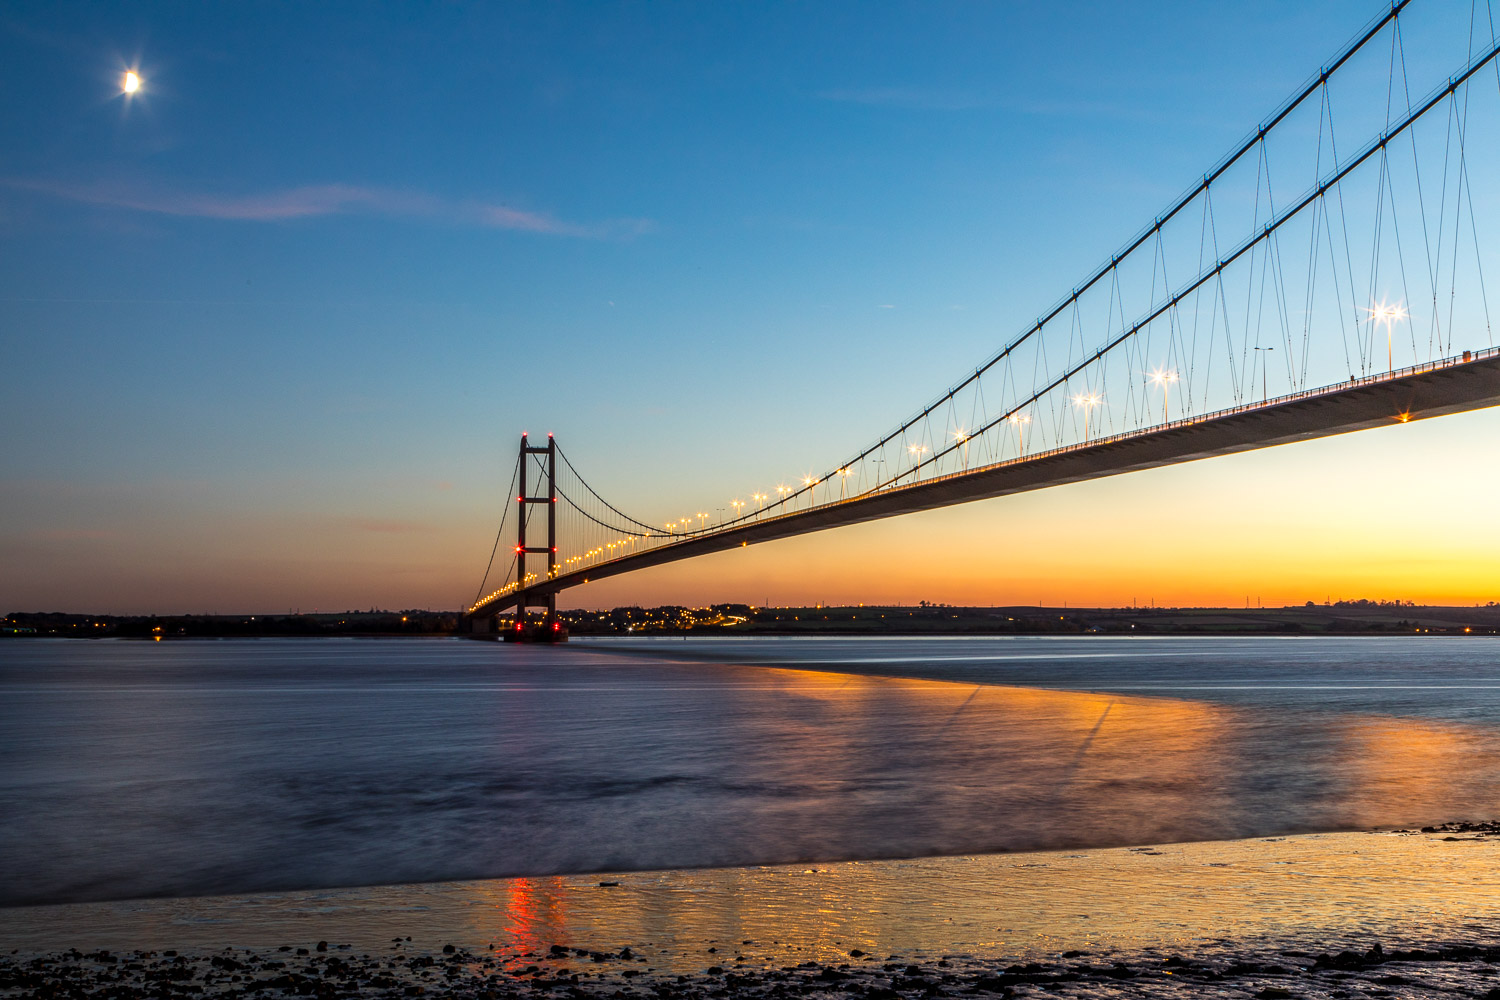 Humber Bridge at sunset